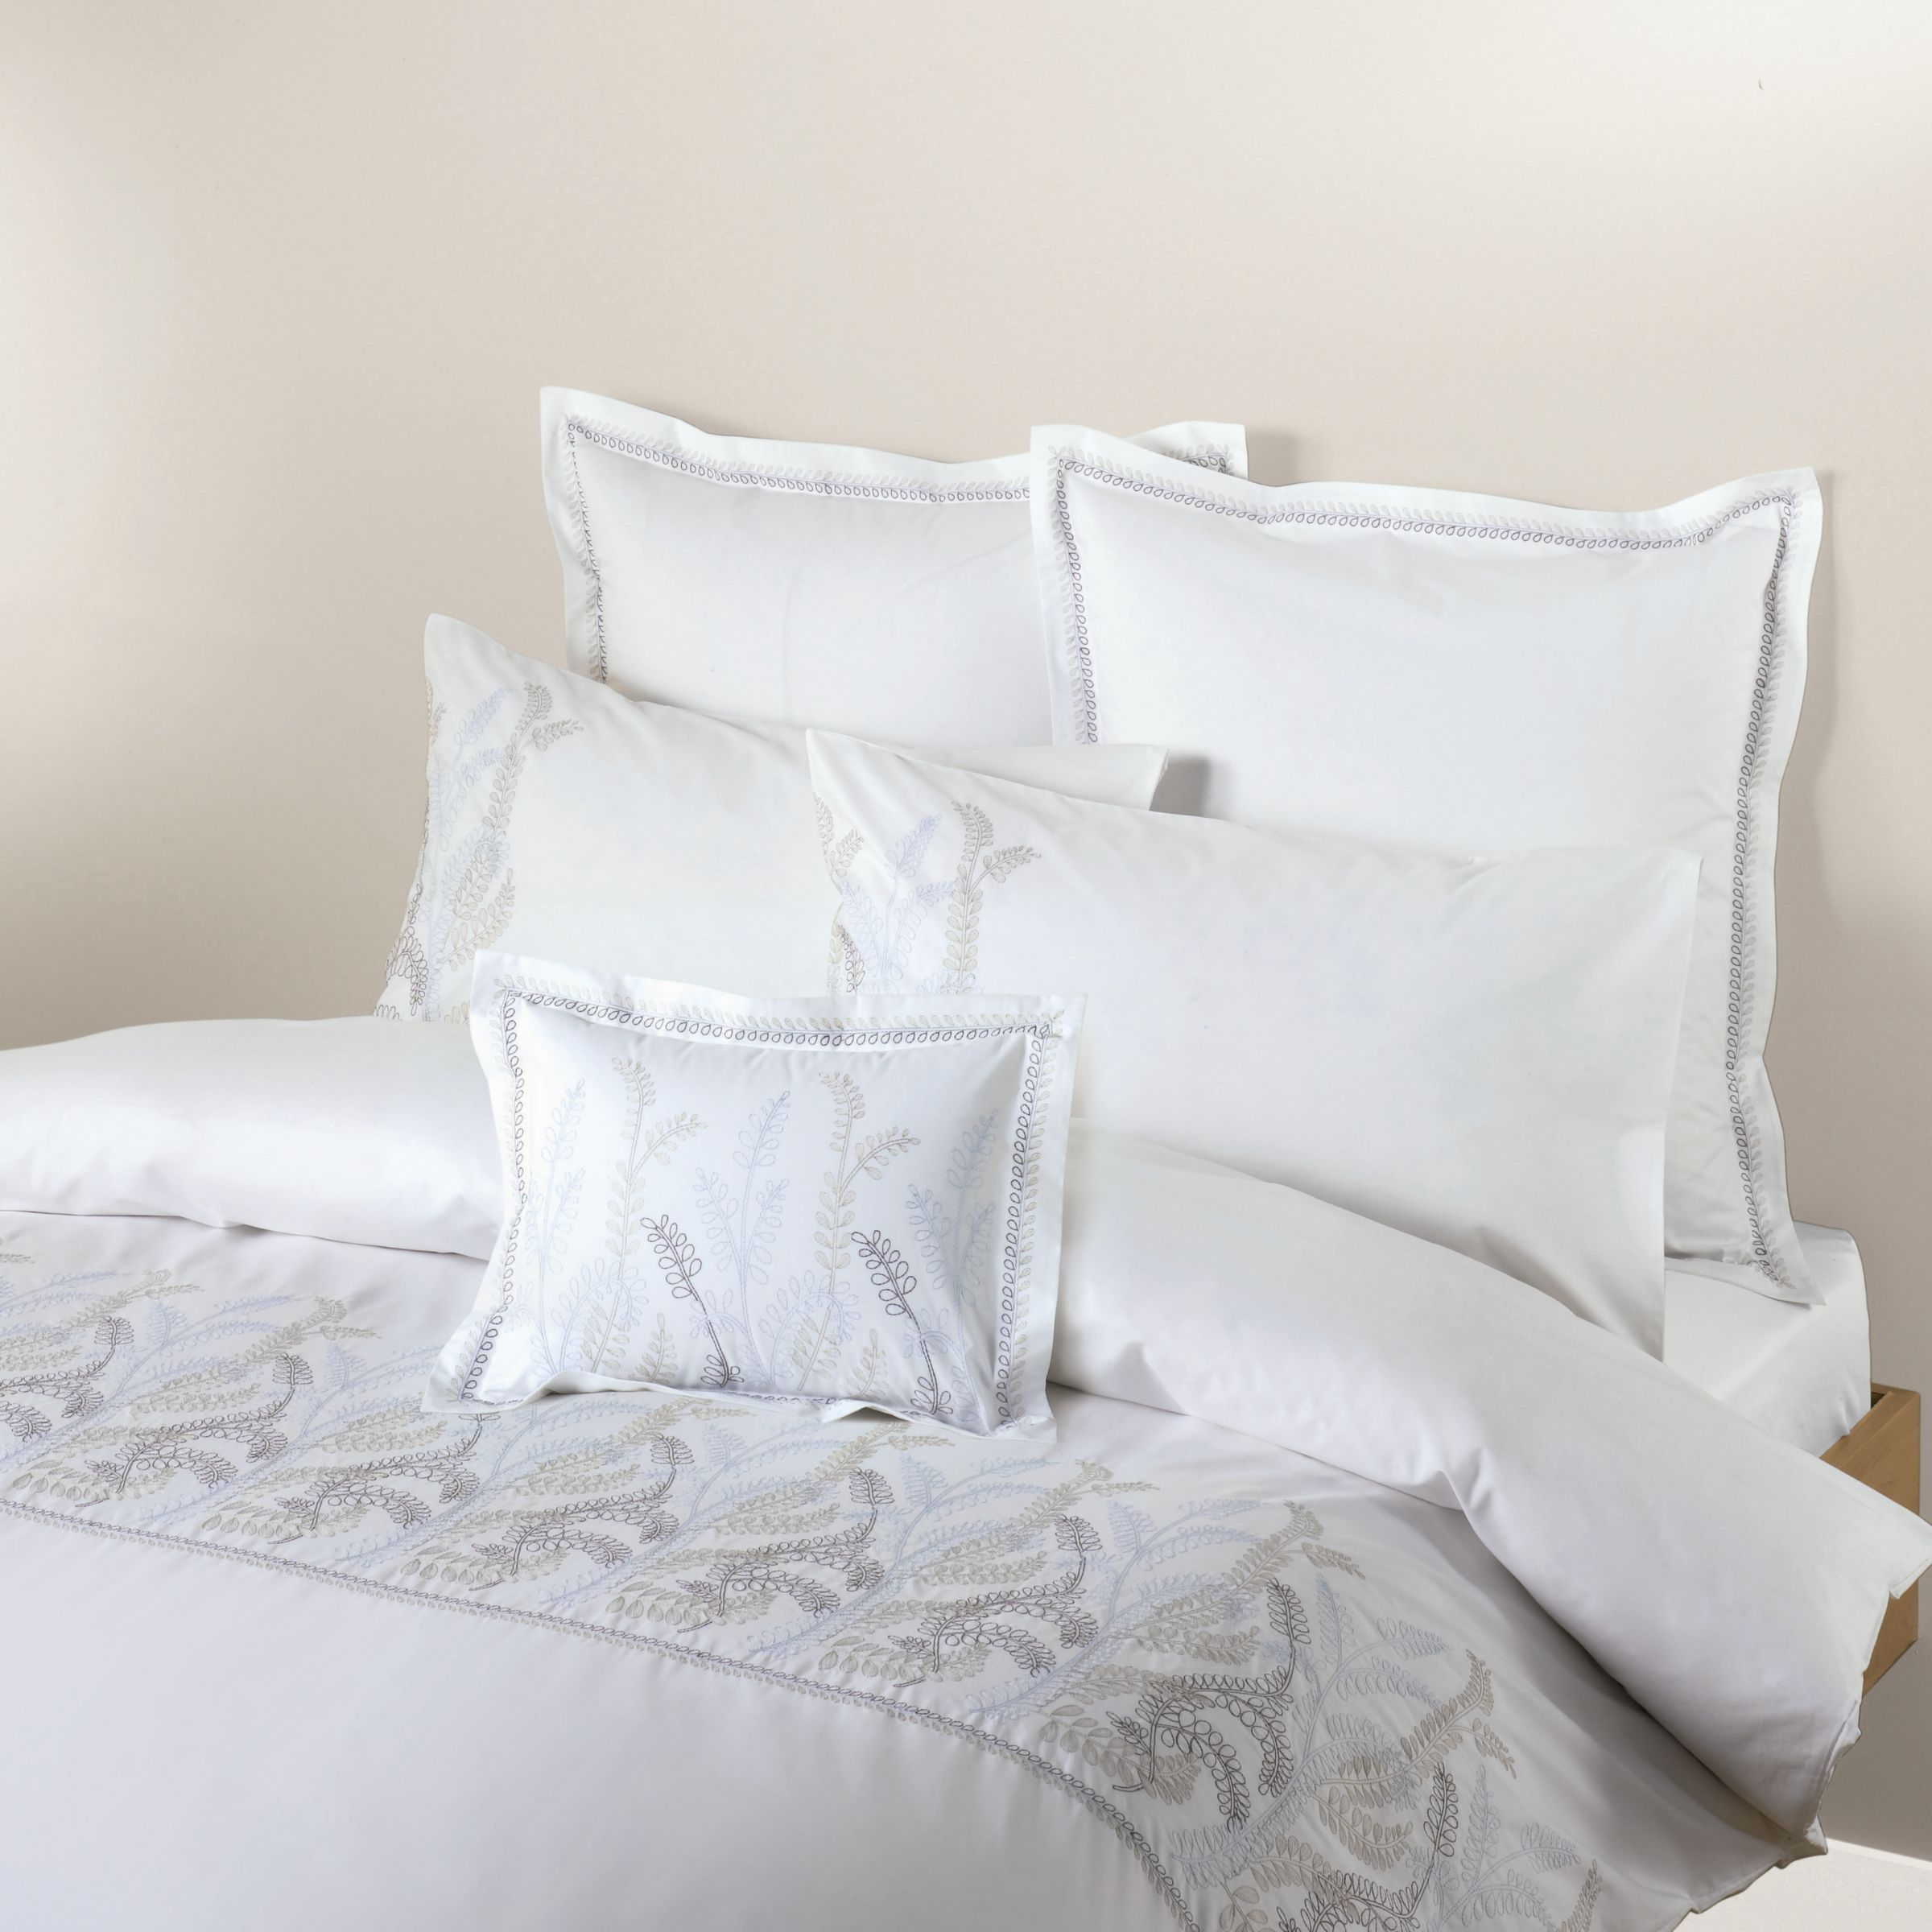 john lewis embroidered leaves duvet covers review. Black Bedroom Furniture Sets. Home Design Ideas